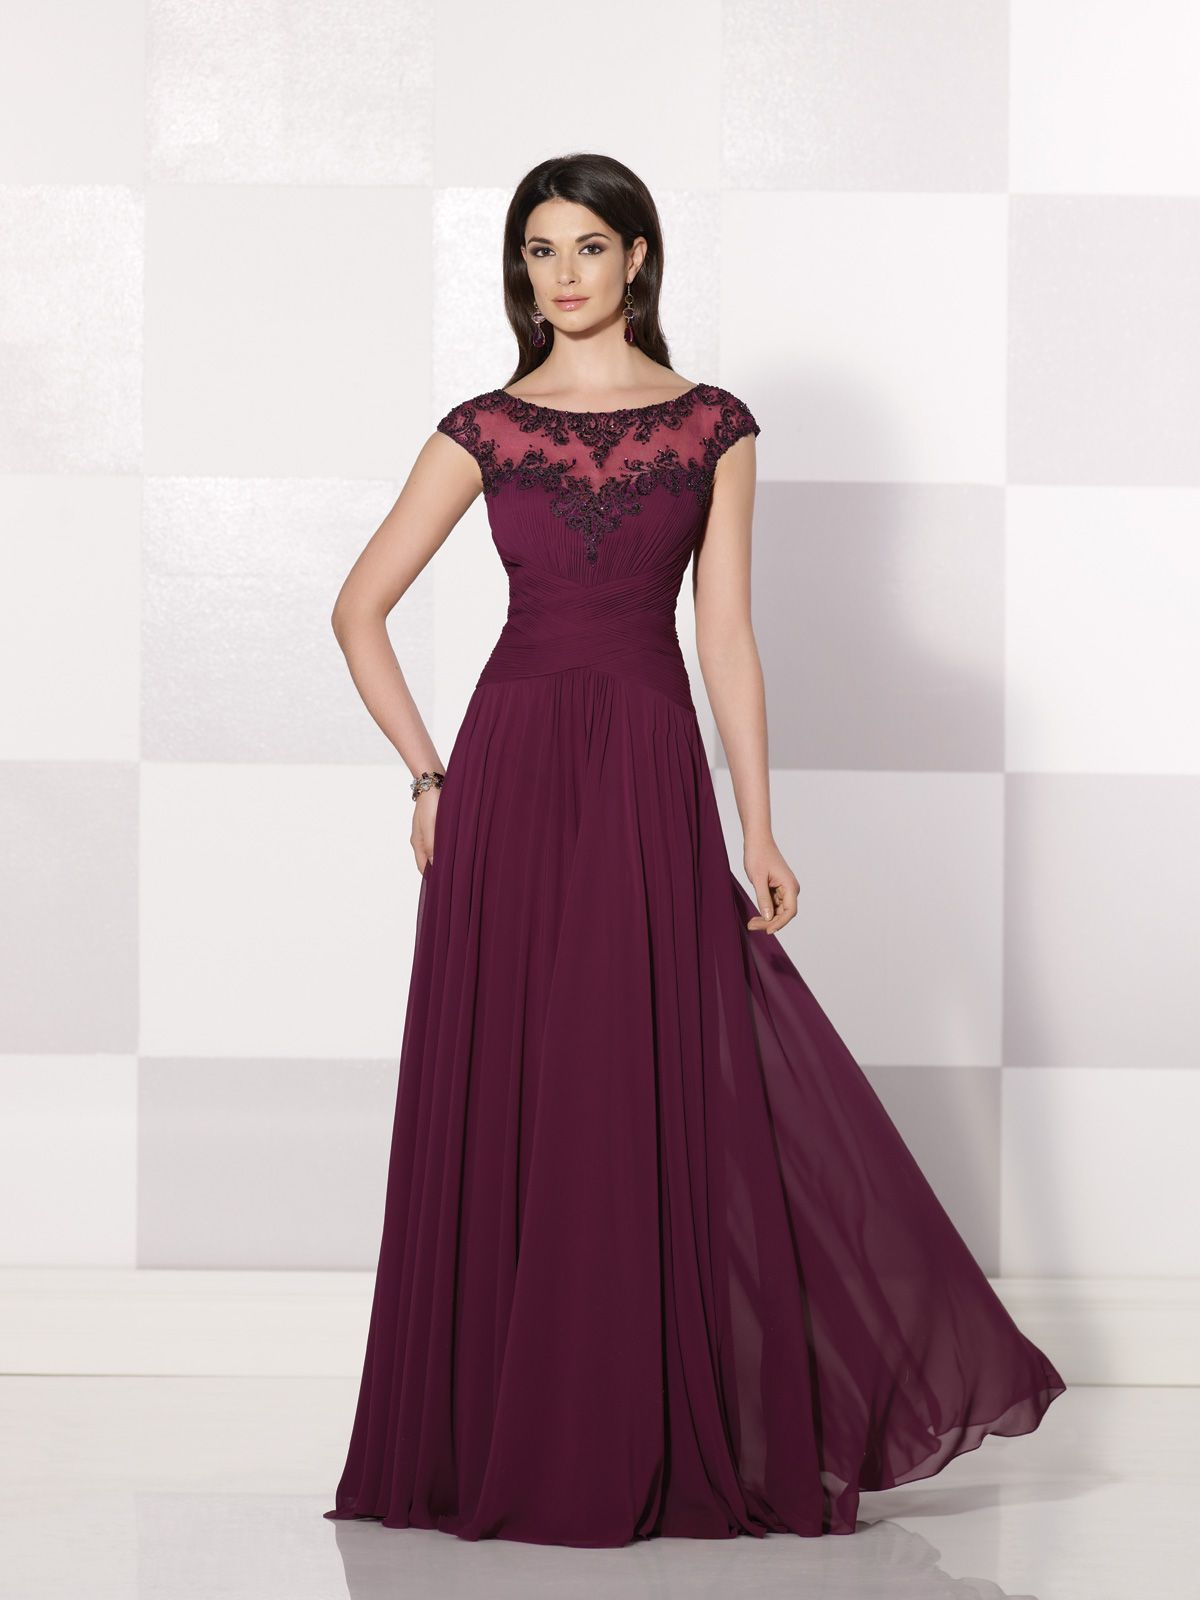 Chiffon A Line Formal Dress With Cap Sleeves Trimmed Hand Beading Beaded Illusion Bateau Neckline Over Sweetheart Crisscross Ruched Bodice